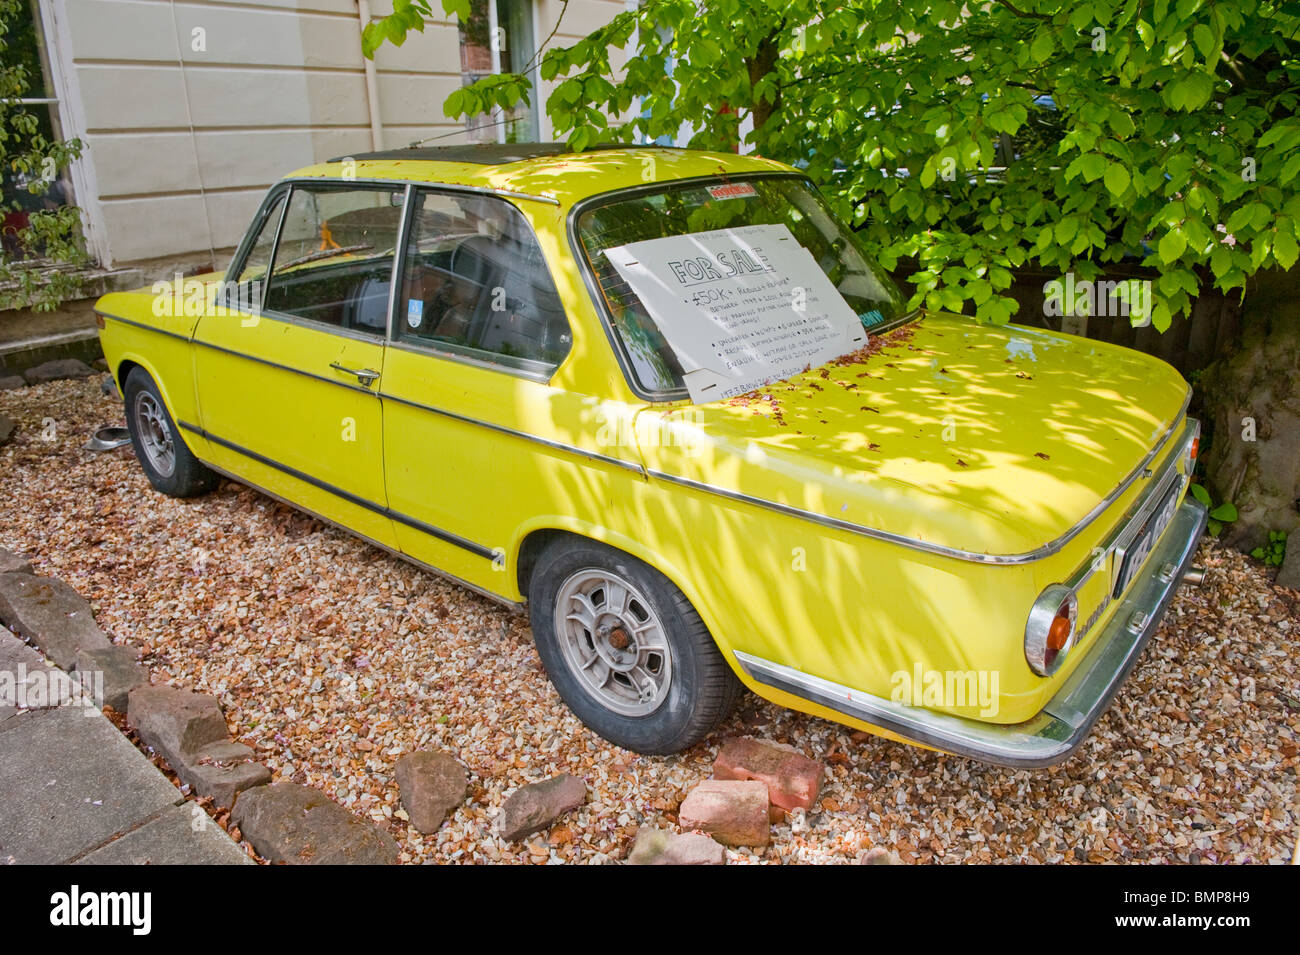 1973 bmw 2002 tii alpina a4 stockfoto bild 29993189 alamy. Black Bedroom Furniture Sets. Home Design Ideas